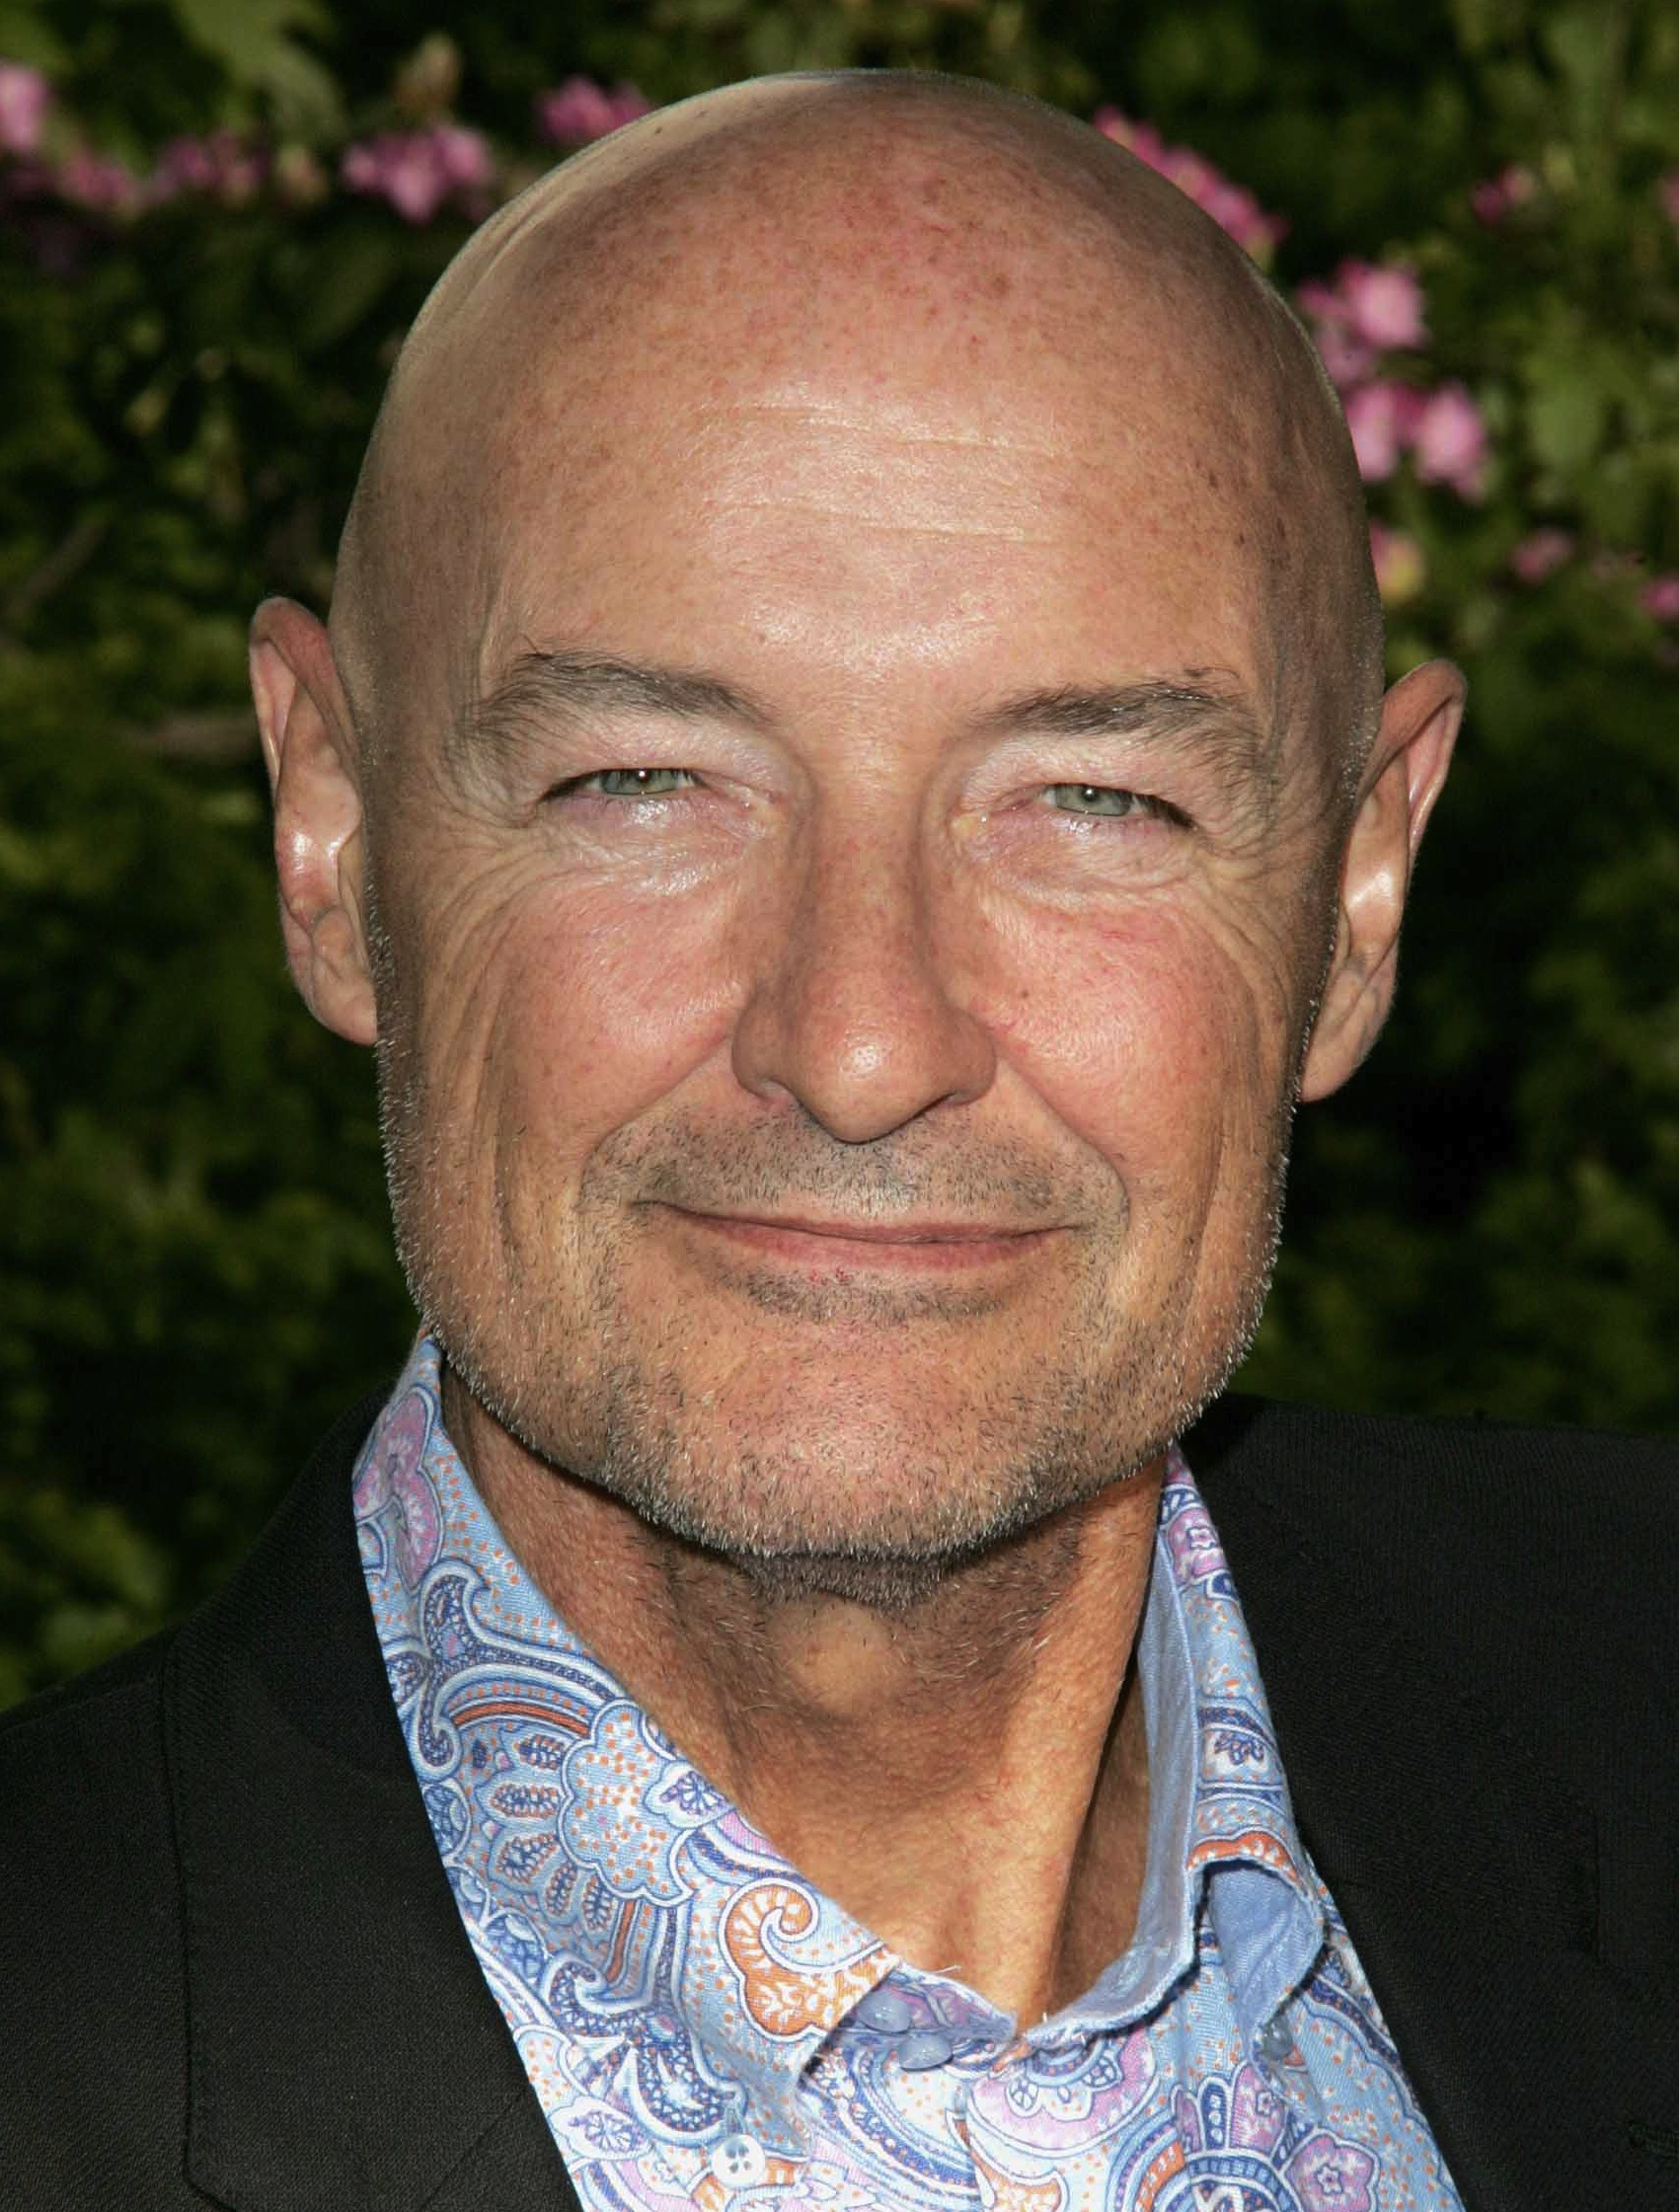 terry oquinn